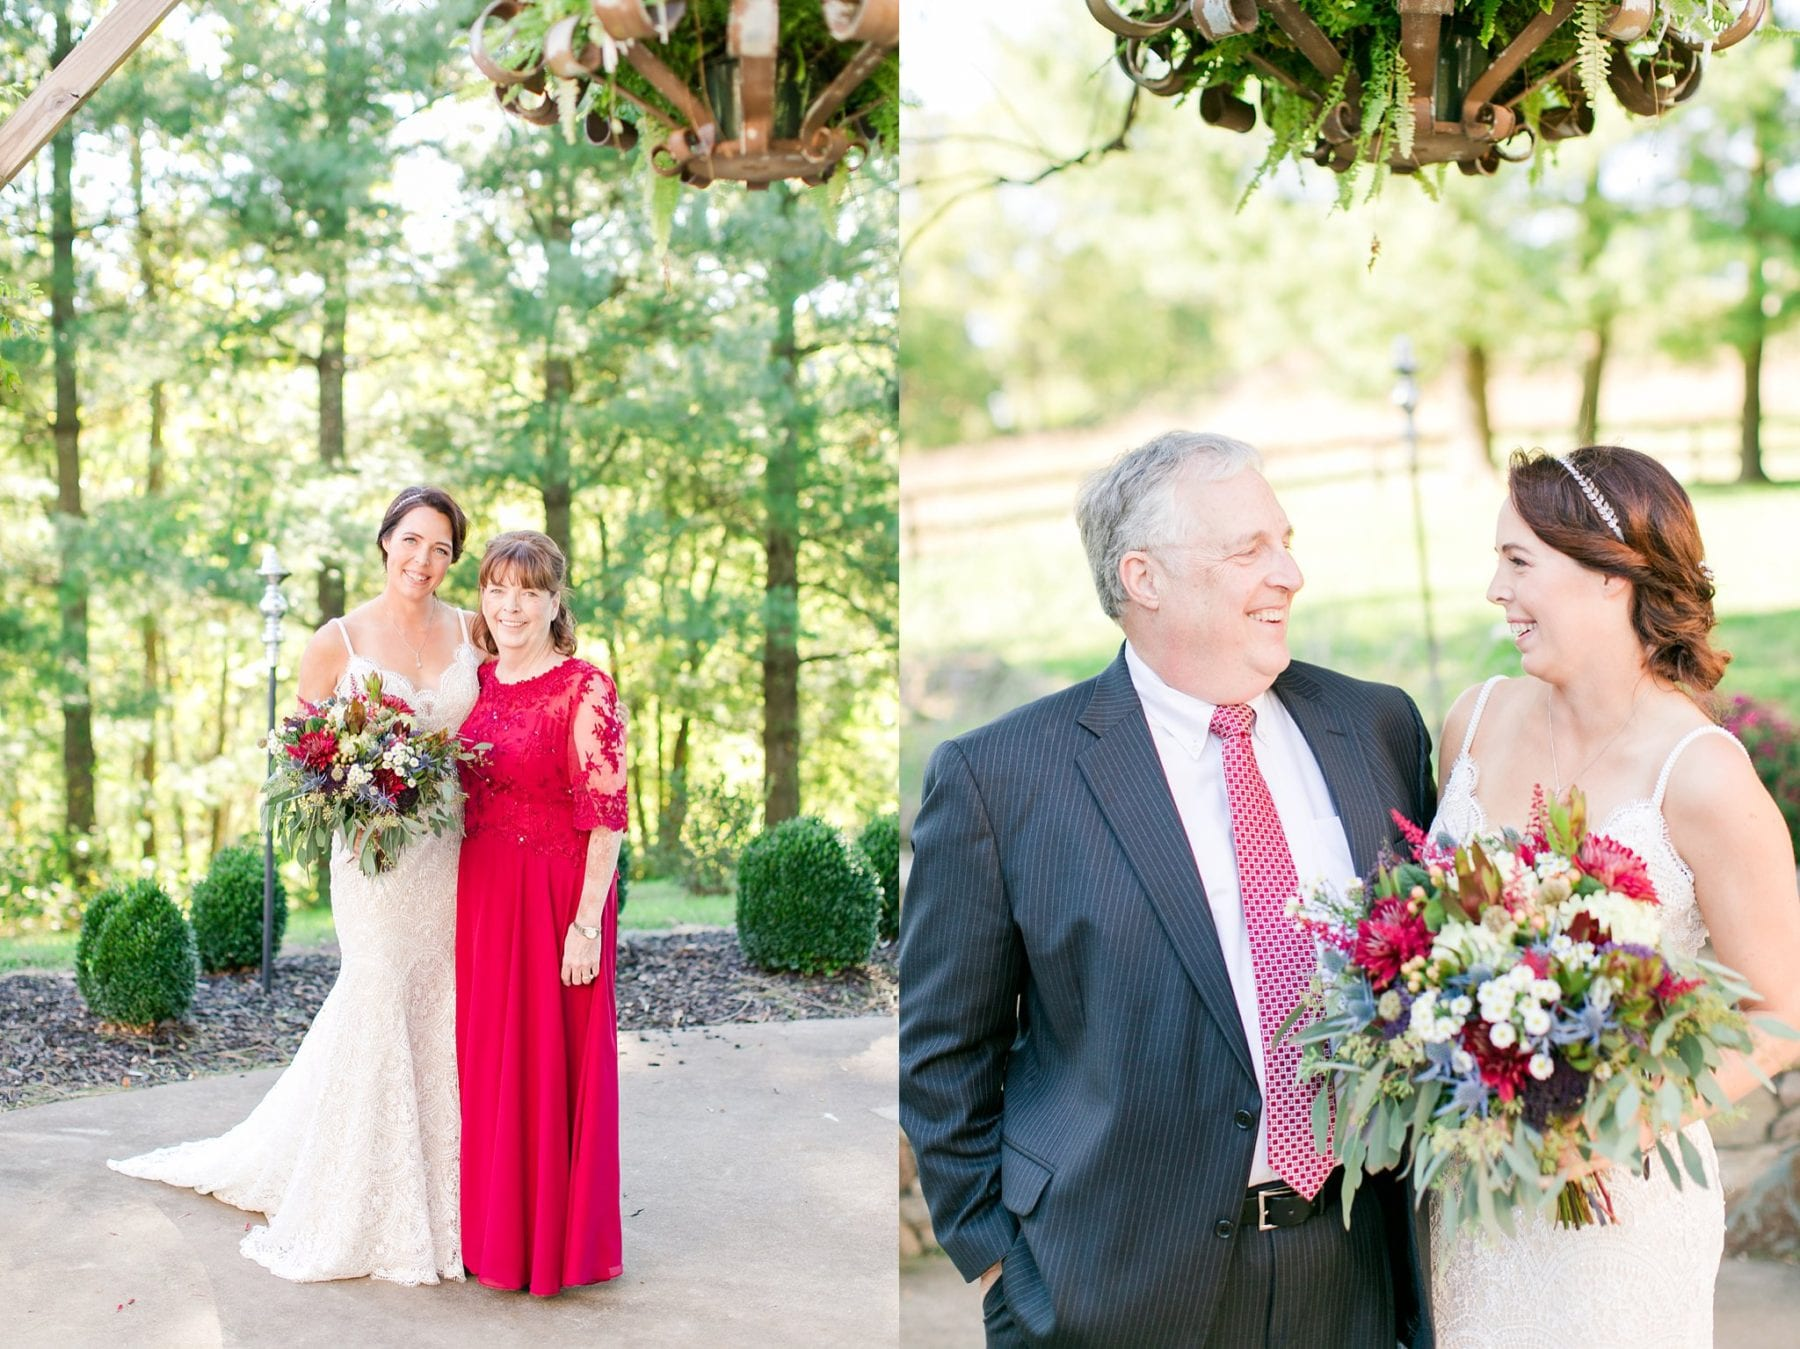 Tranquility Farm Wedding Photos Leesburg Wedding Photographer Megan Kelsey Photography Virginia Wedding Photographer Matt & Colleen-107.jpg